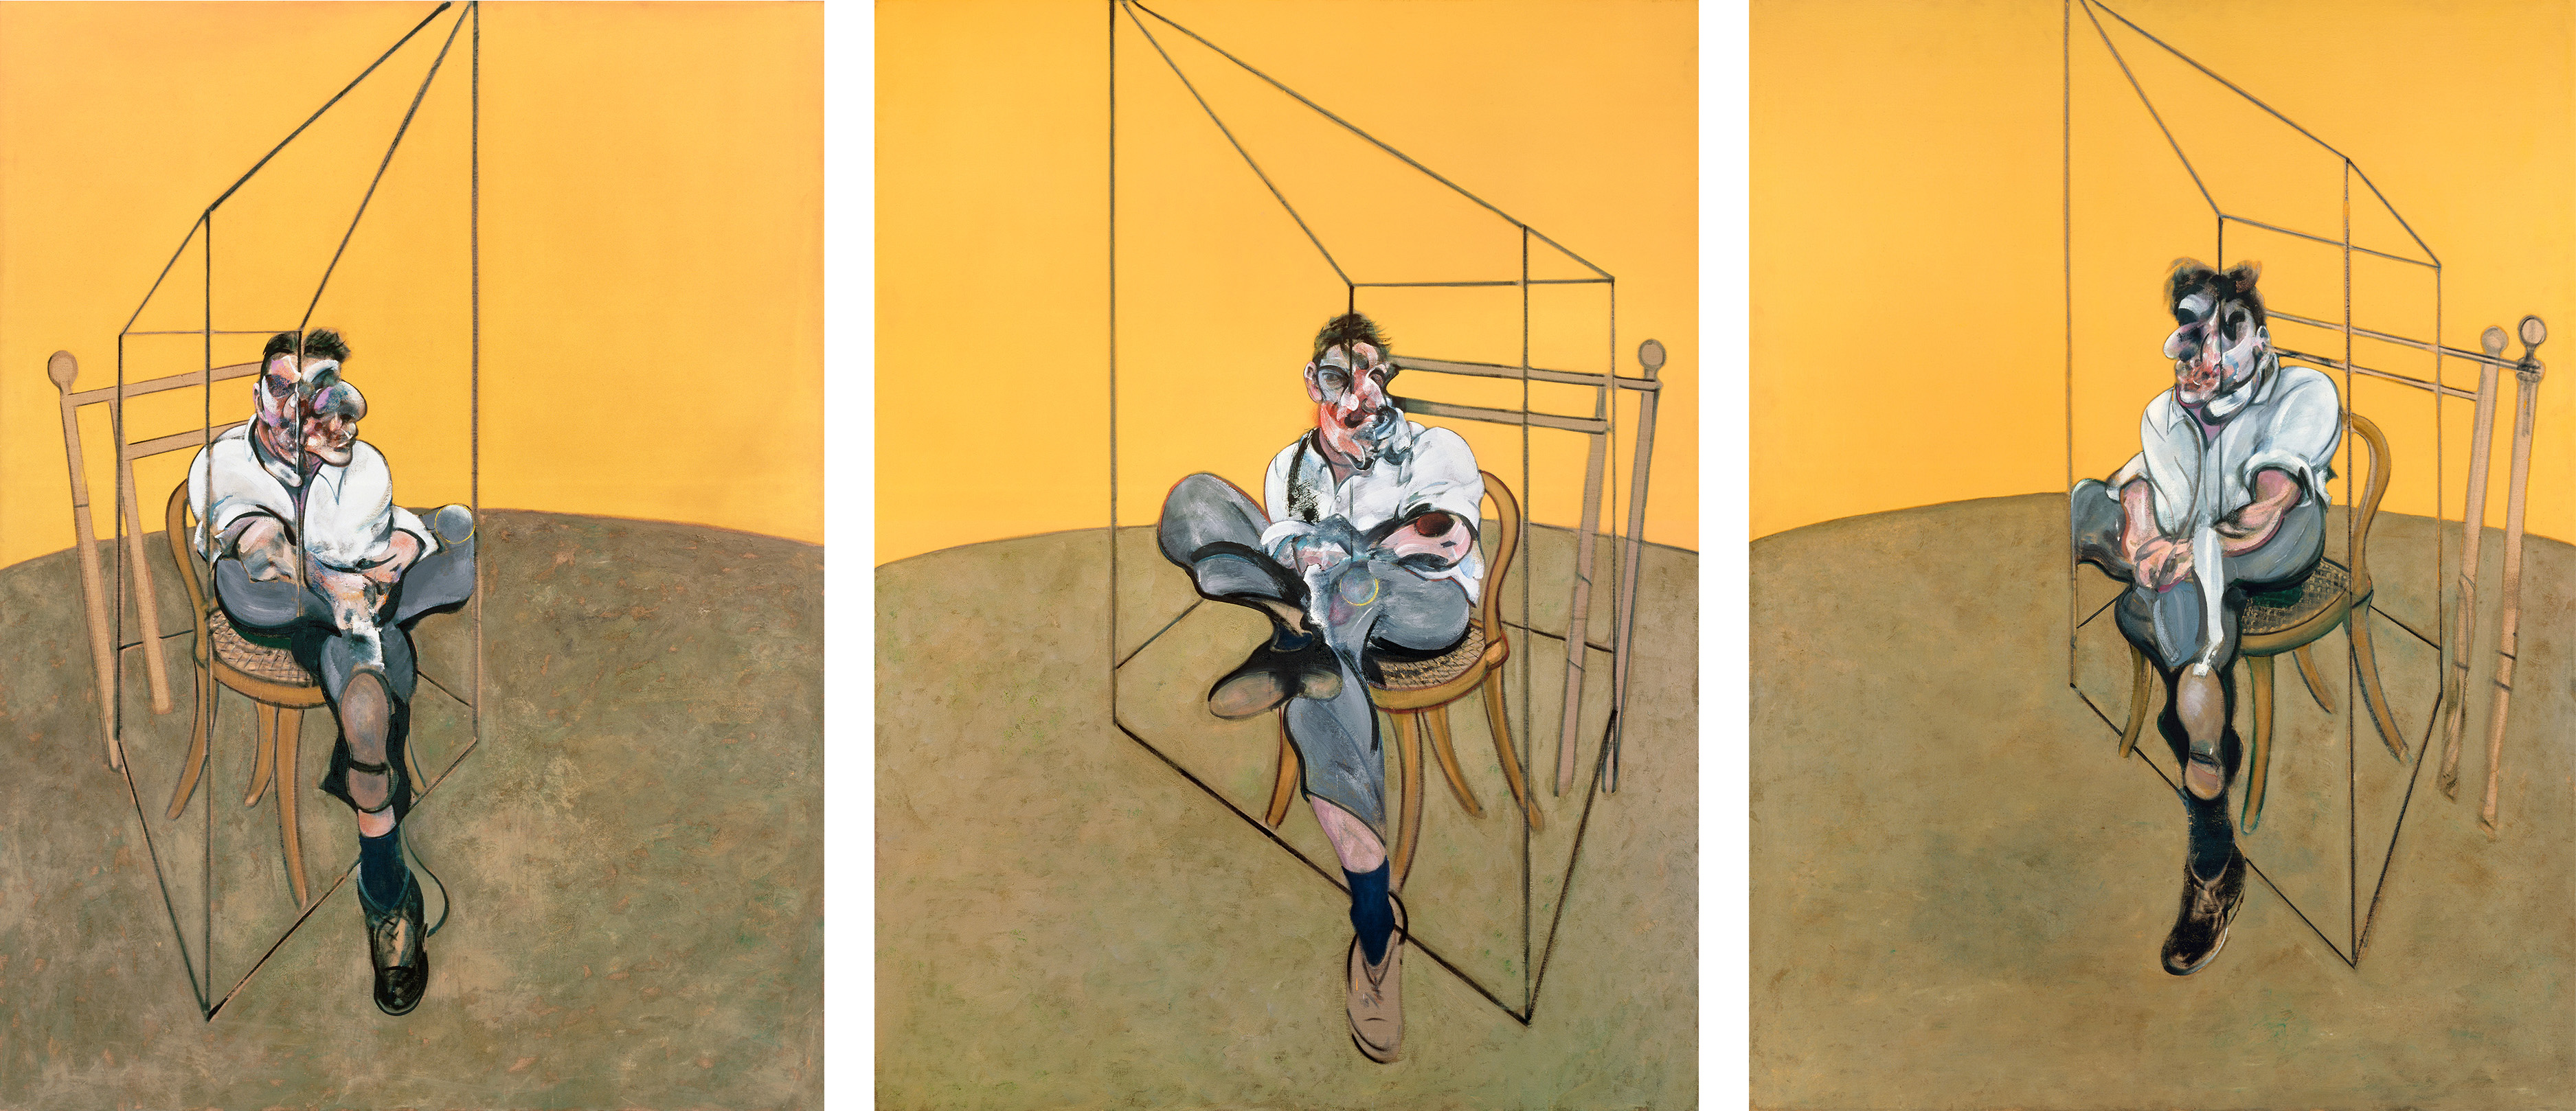 Francis Bacon, Three Studies of Lucian Freud, 1969. Oil on canvas. CR number 69-07. © The Estate of Francis Bacon / DACS London 2020. All rights reserved.